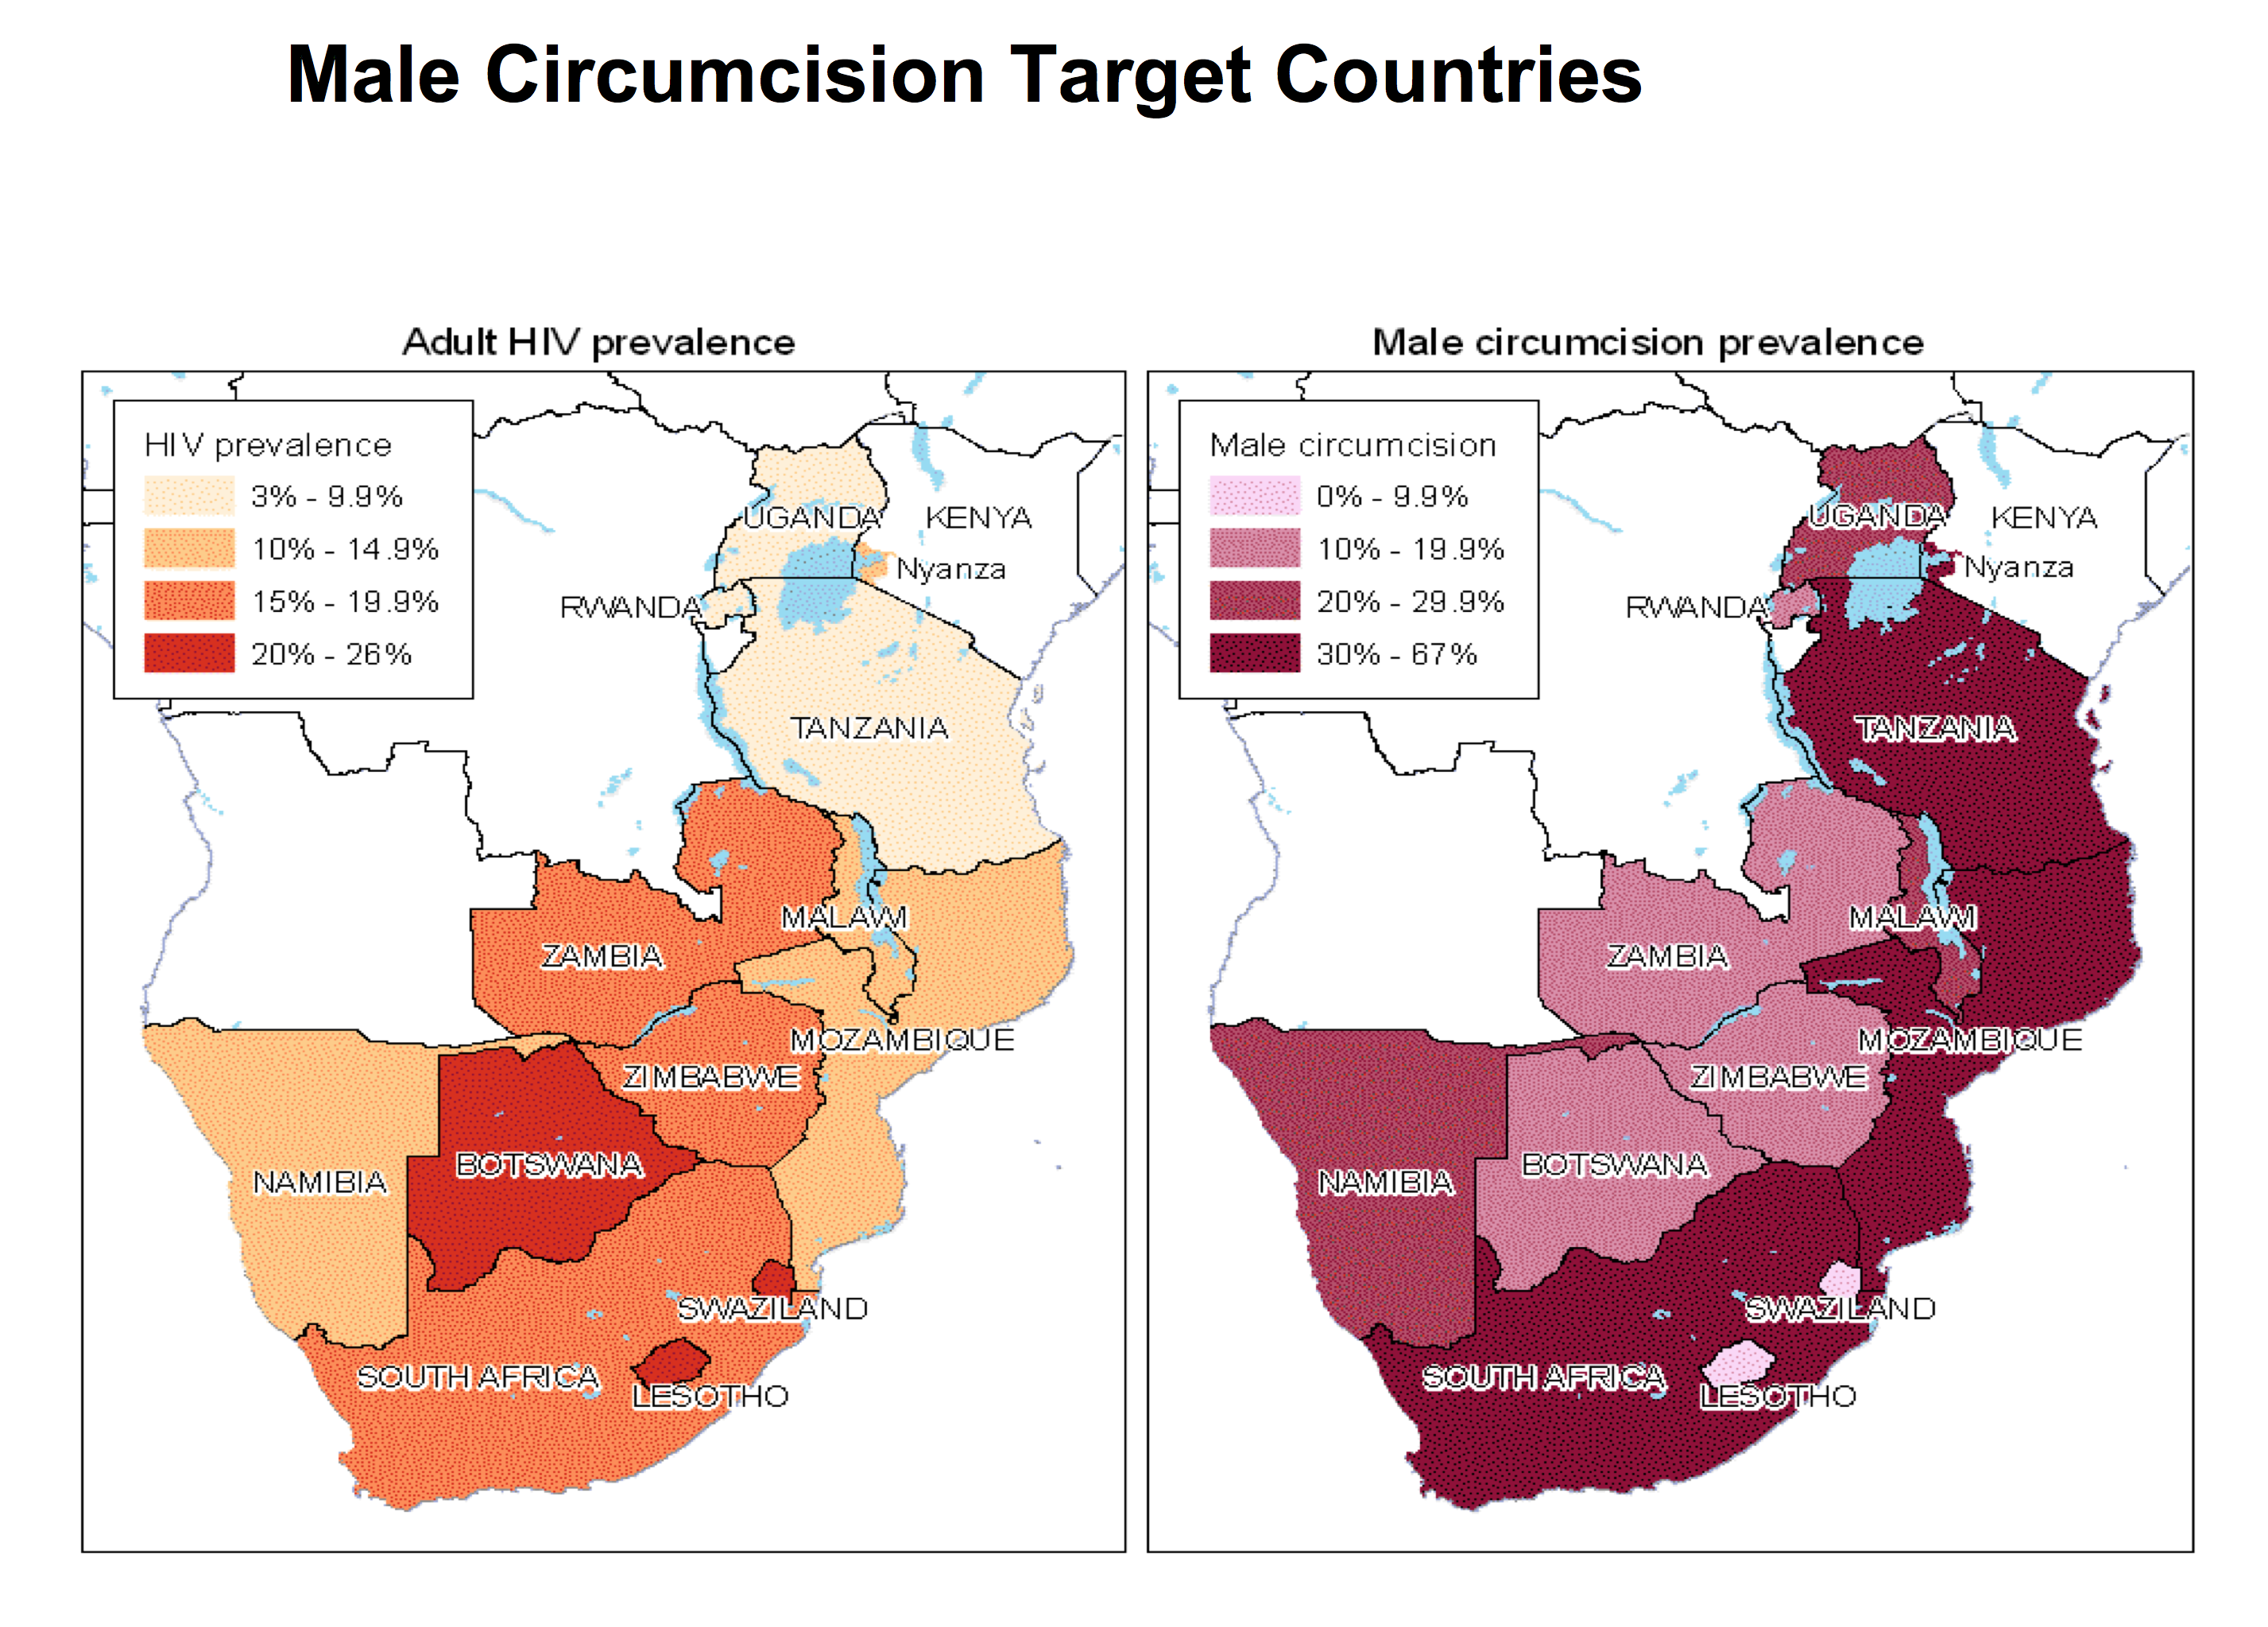 Geographic distribution of HIV and male circumcision prevalence.